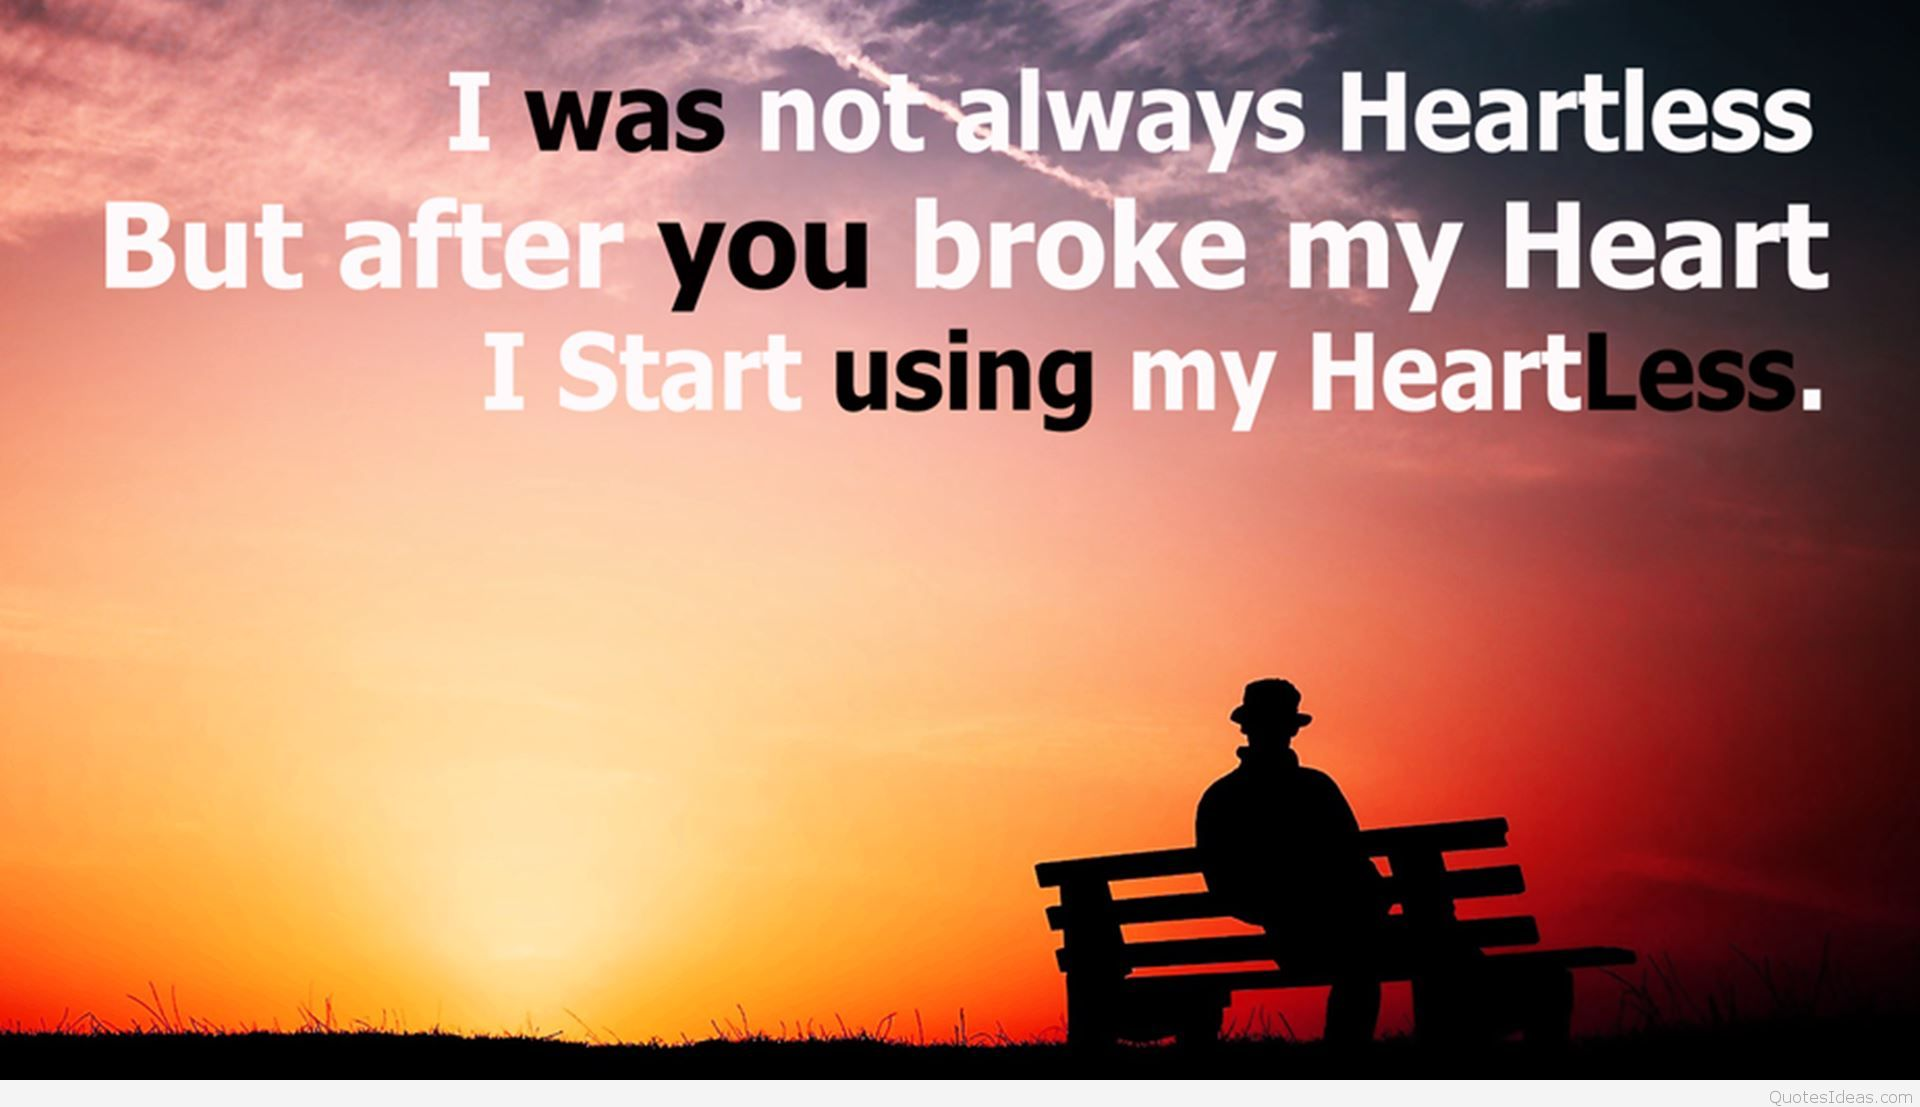 Broken Heart Thoughts Wallpaper